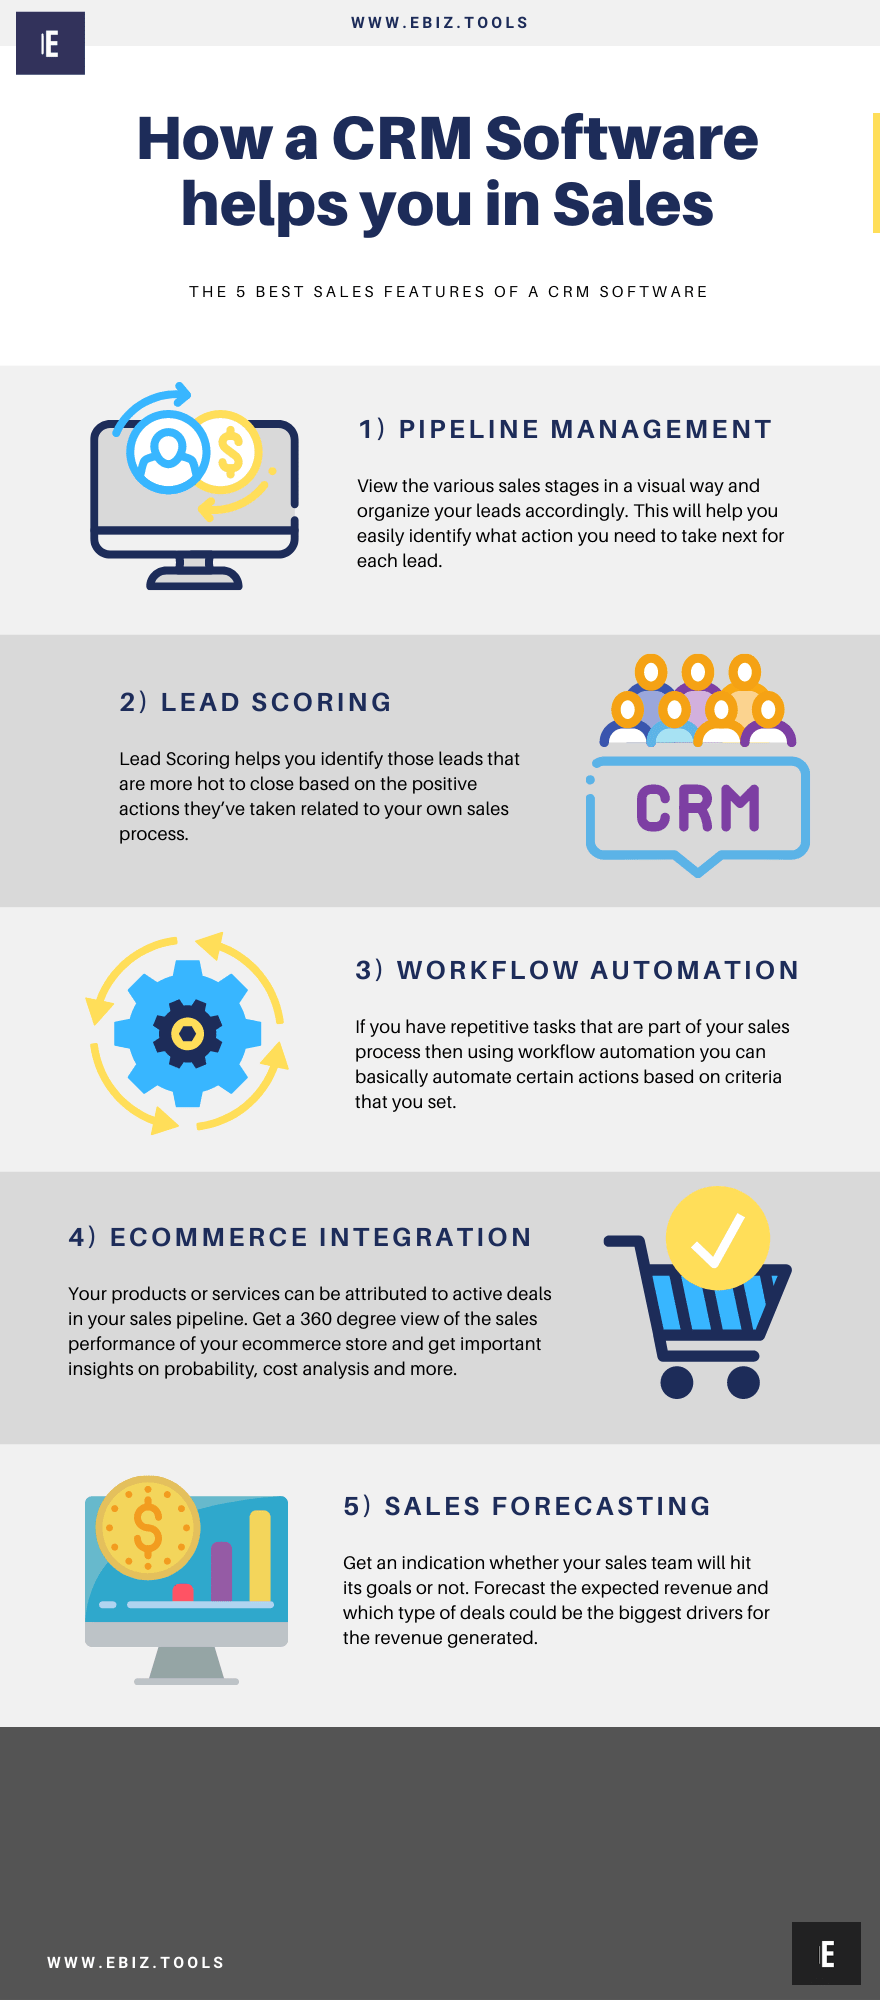 How a CRM Software helps you in sales